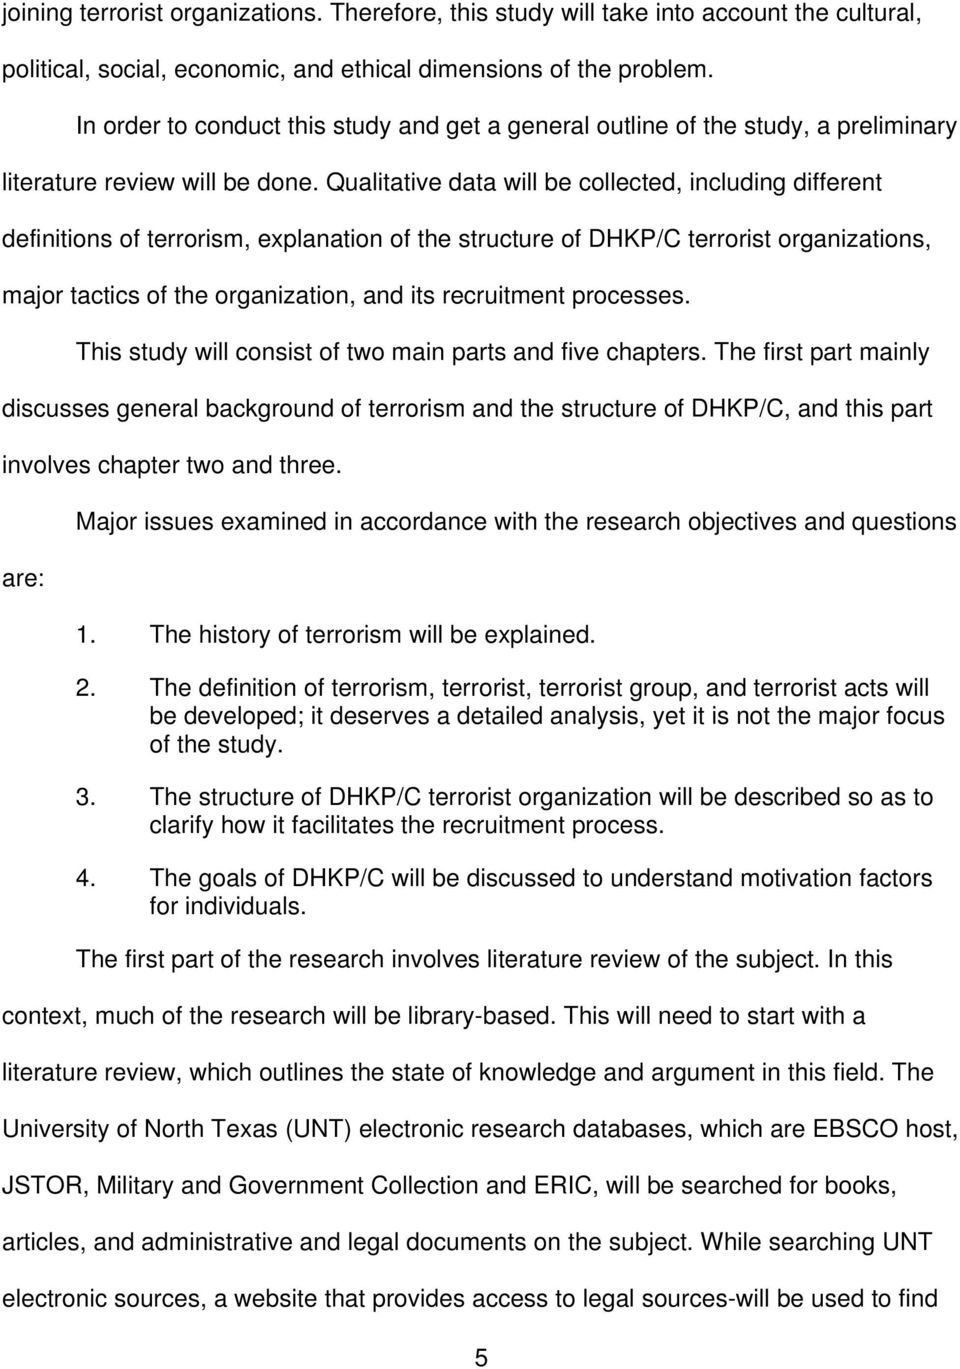 Qualitative data will be collected, including different definitions of terrorism, explanation of the structure of DHKP/C terrorist organizations, major tactics of the organization, and its